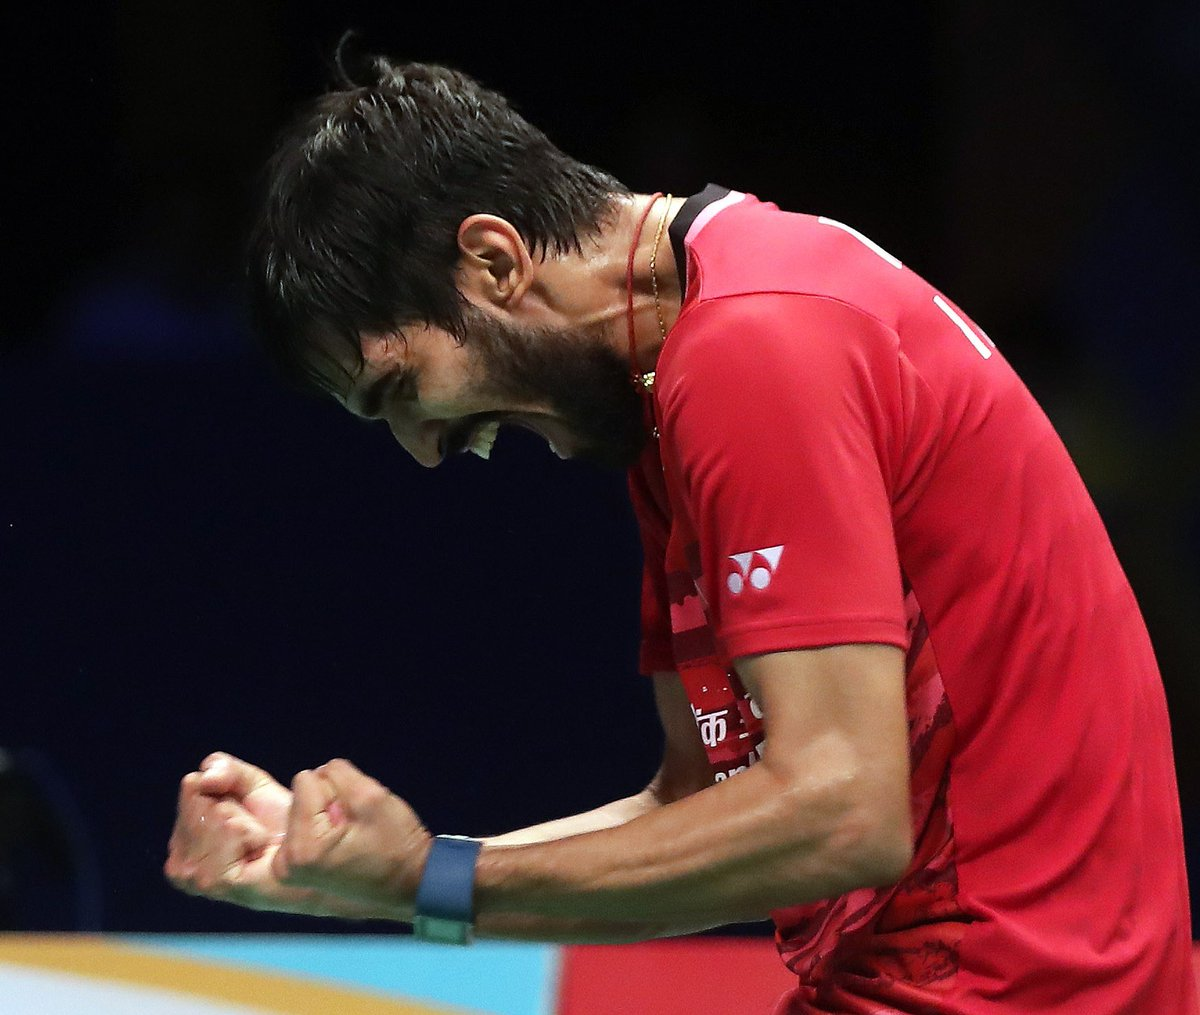 The expression says it all. A tough match but a good win and into my 2nd consecutive Superseries final. #believe #achieve #TeamIndia<br>http://pic.twitter.com/dl43ykziJJ